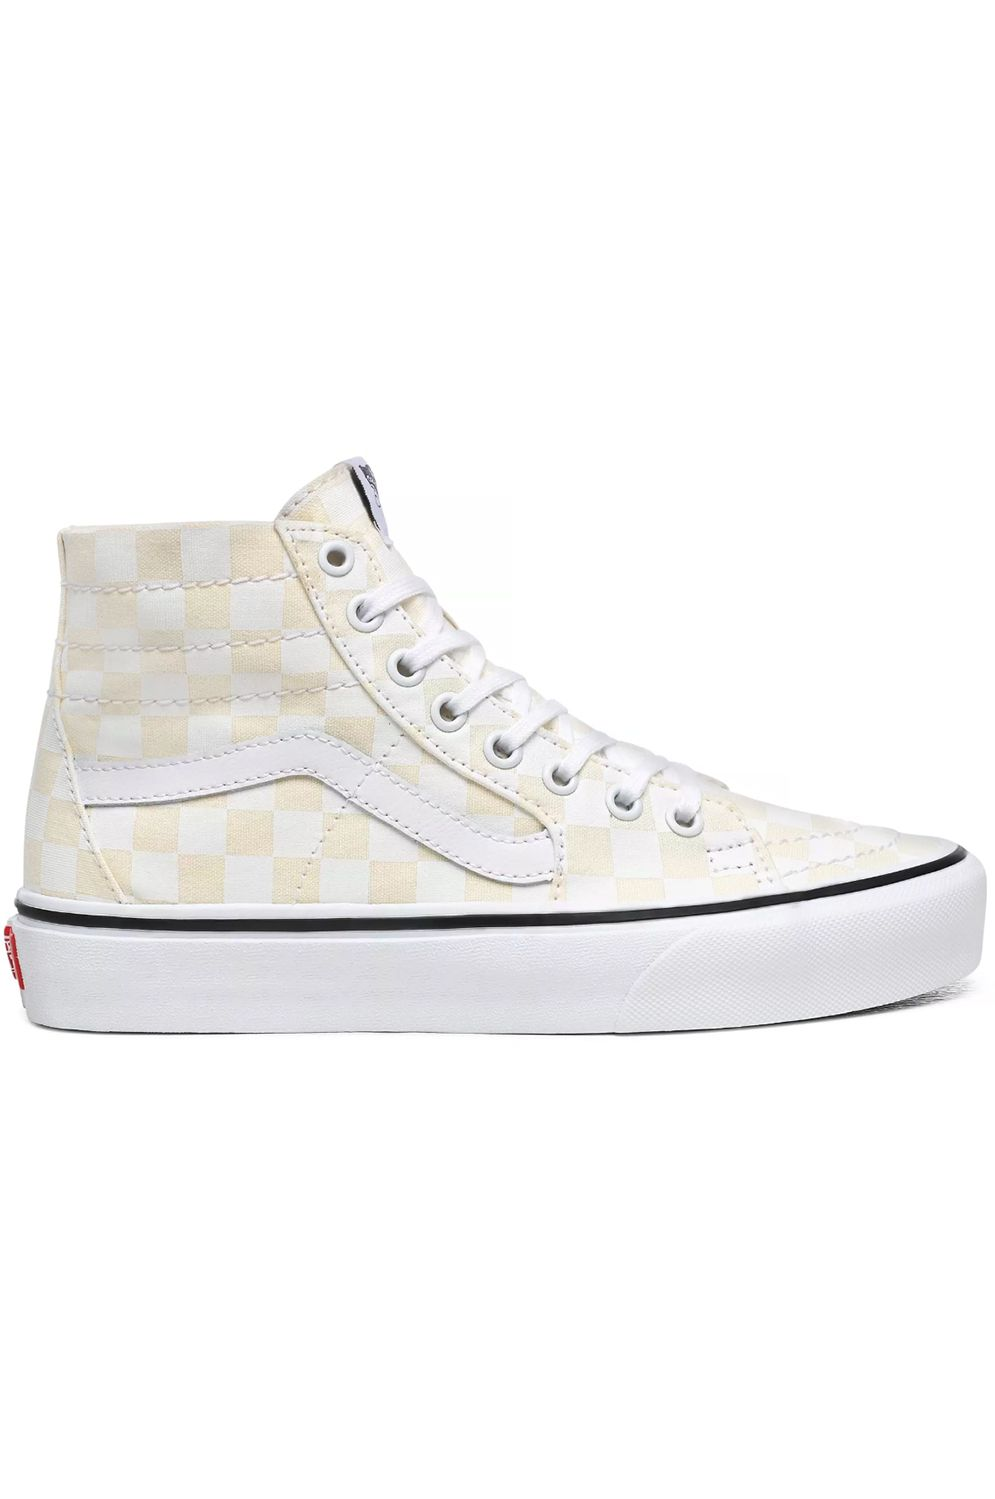 Tenis Vans SK8-HI TAPERED (Checkerboard) White/True White